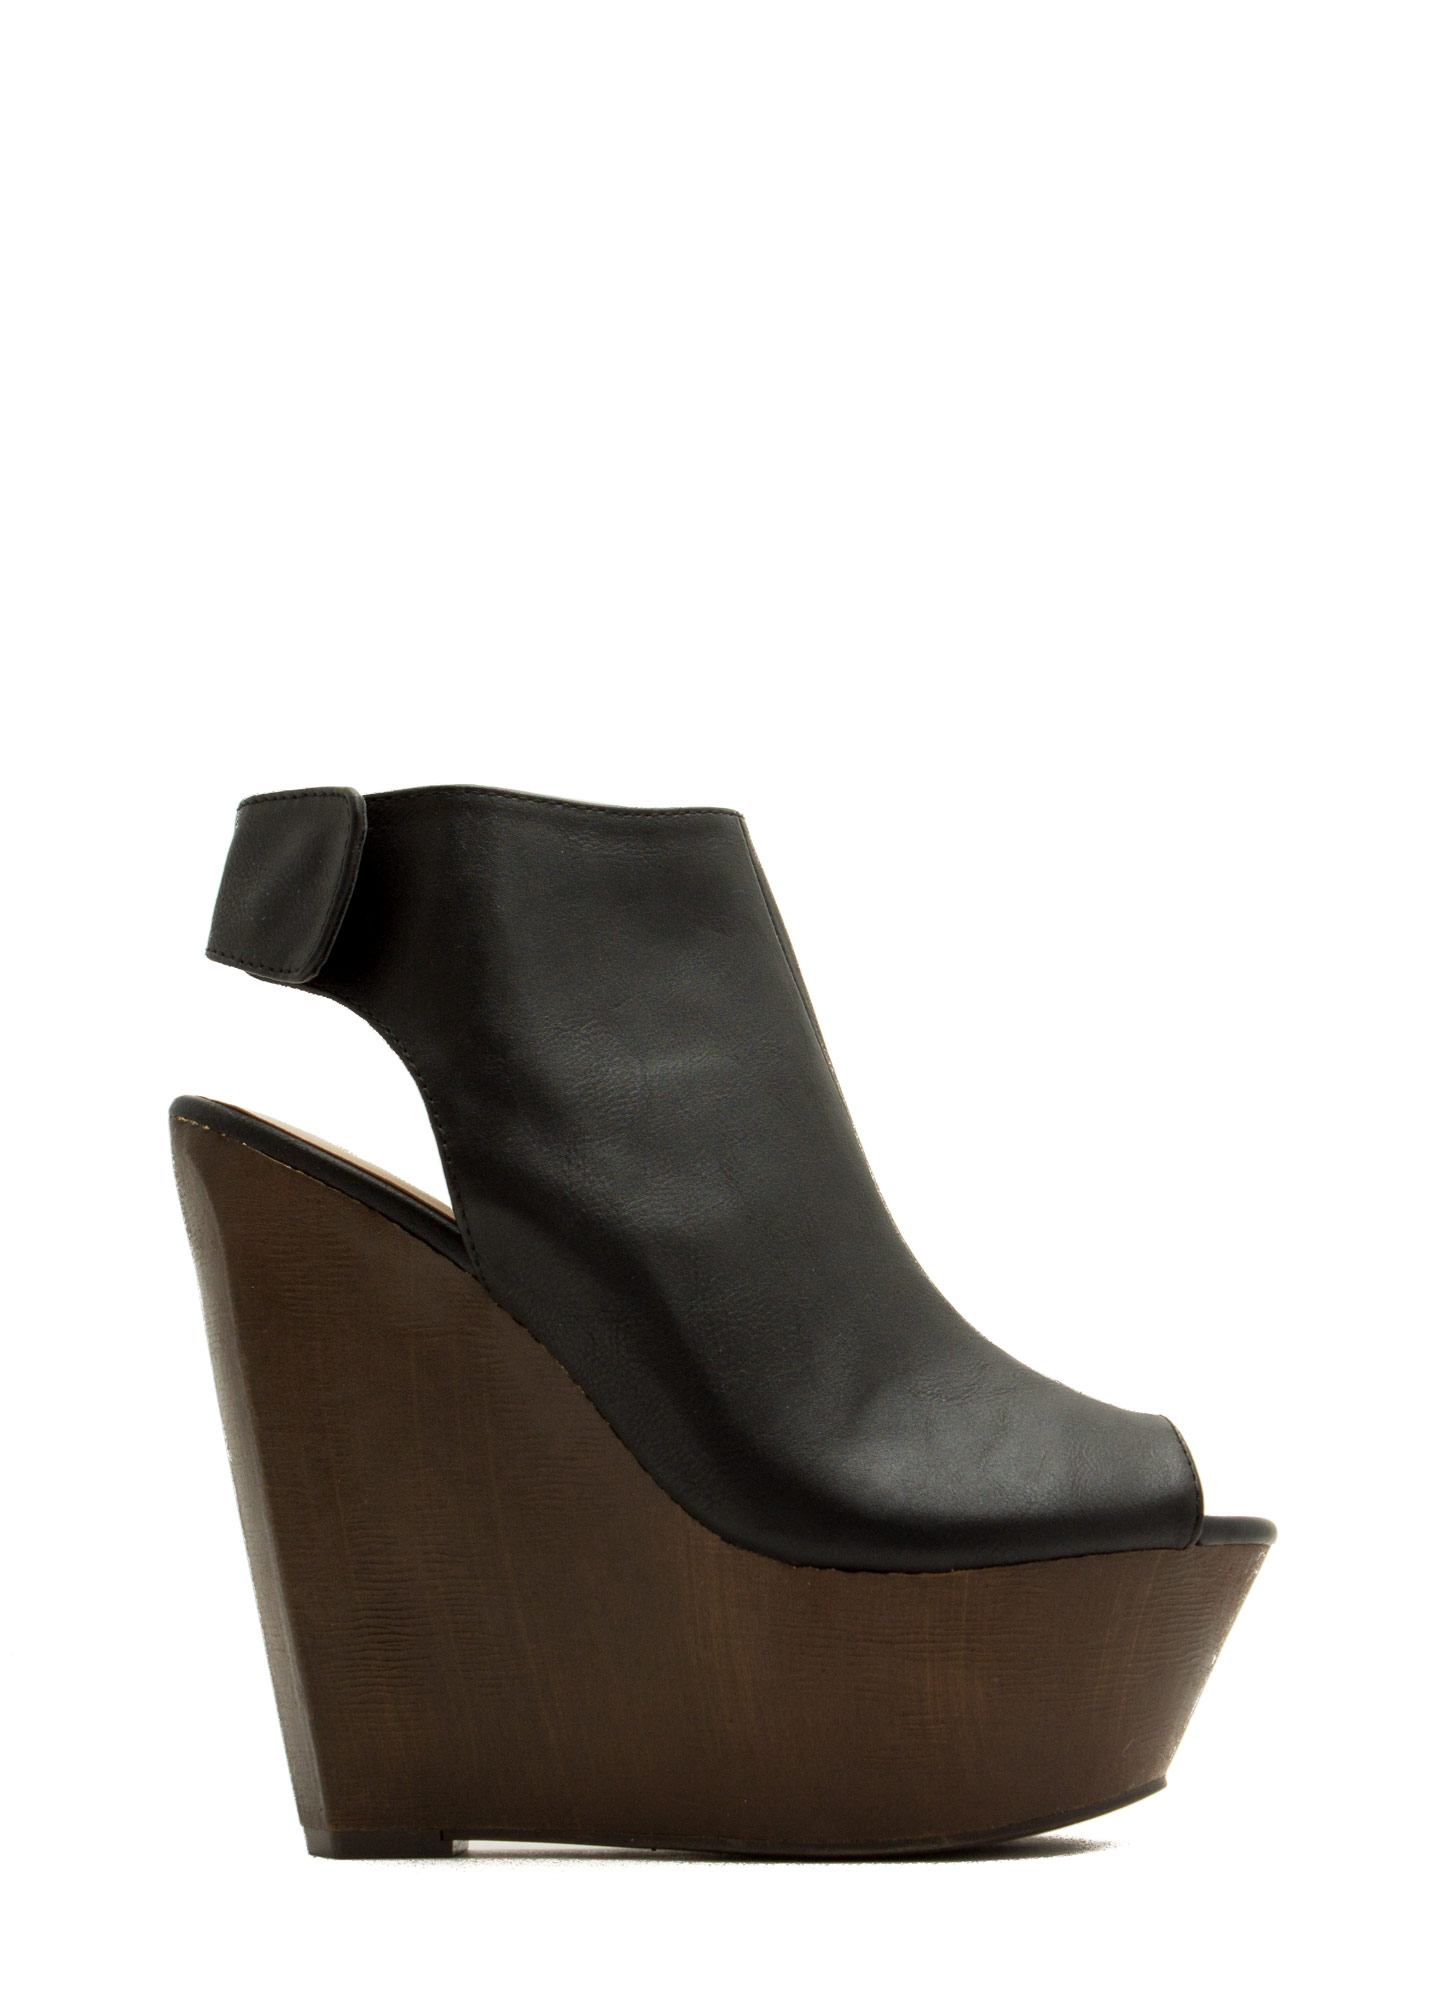 Faux Leather Mule Platform Wedges BLACK